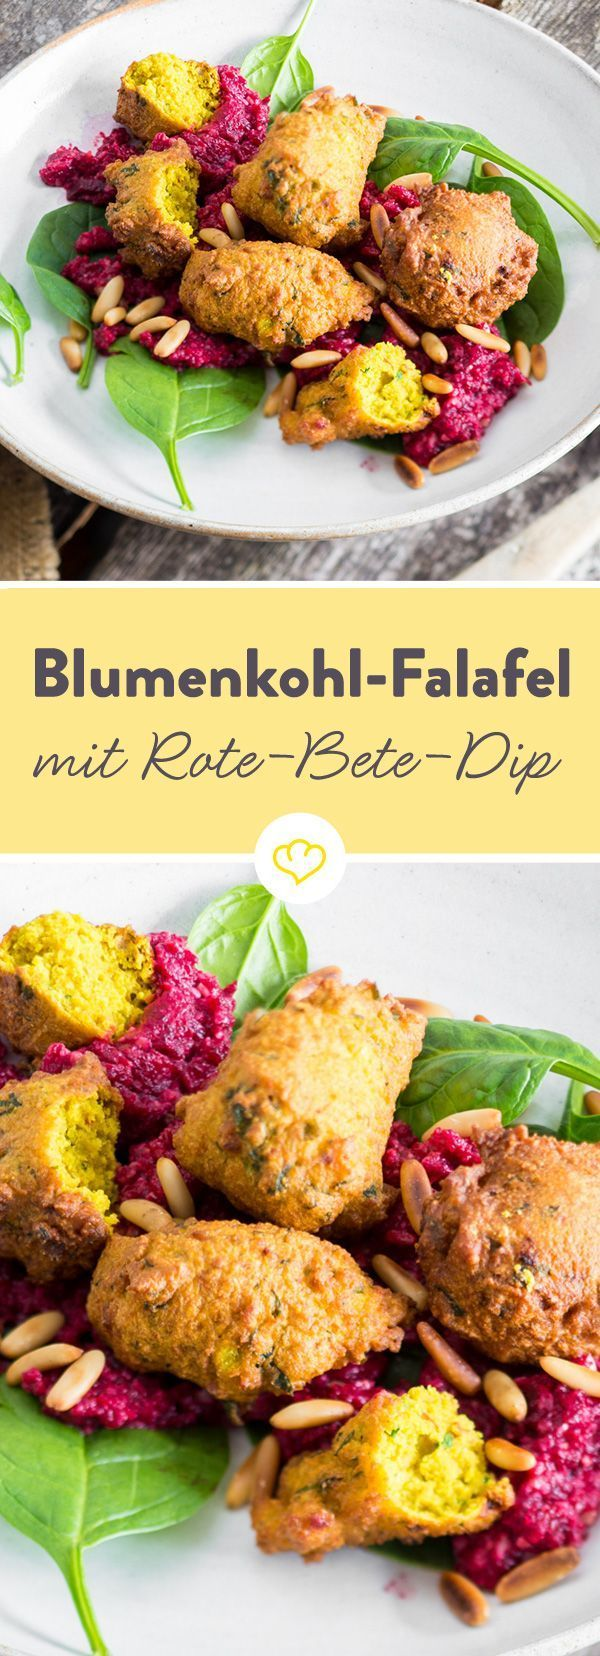 Photo of Street food deluxe! Cauliflower falafel with beetroot dip